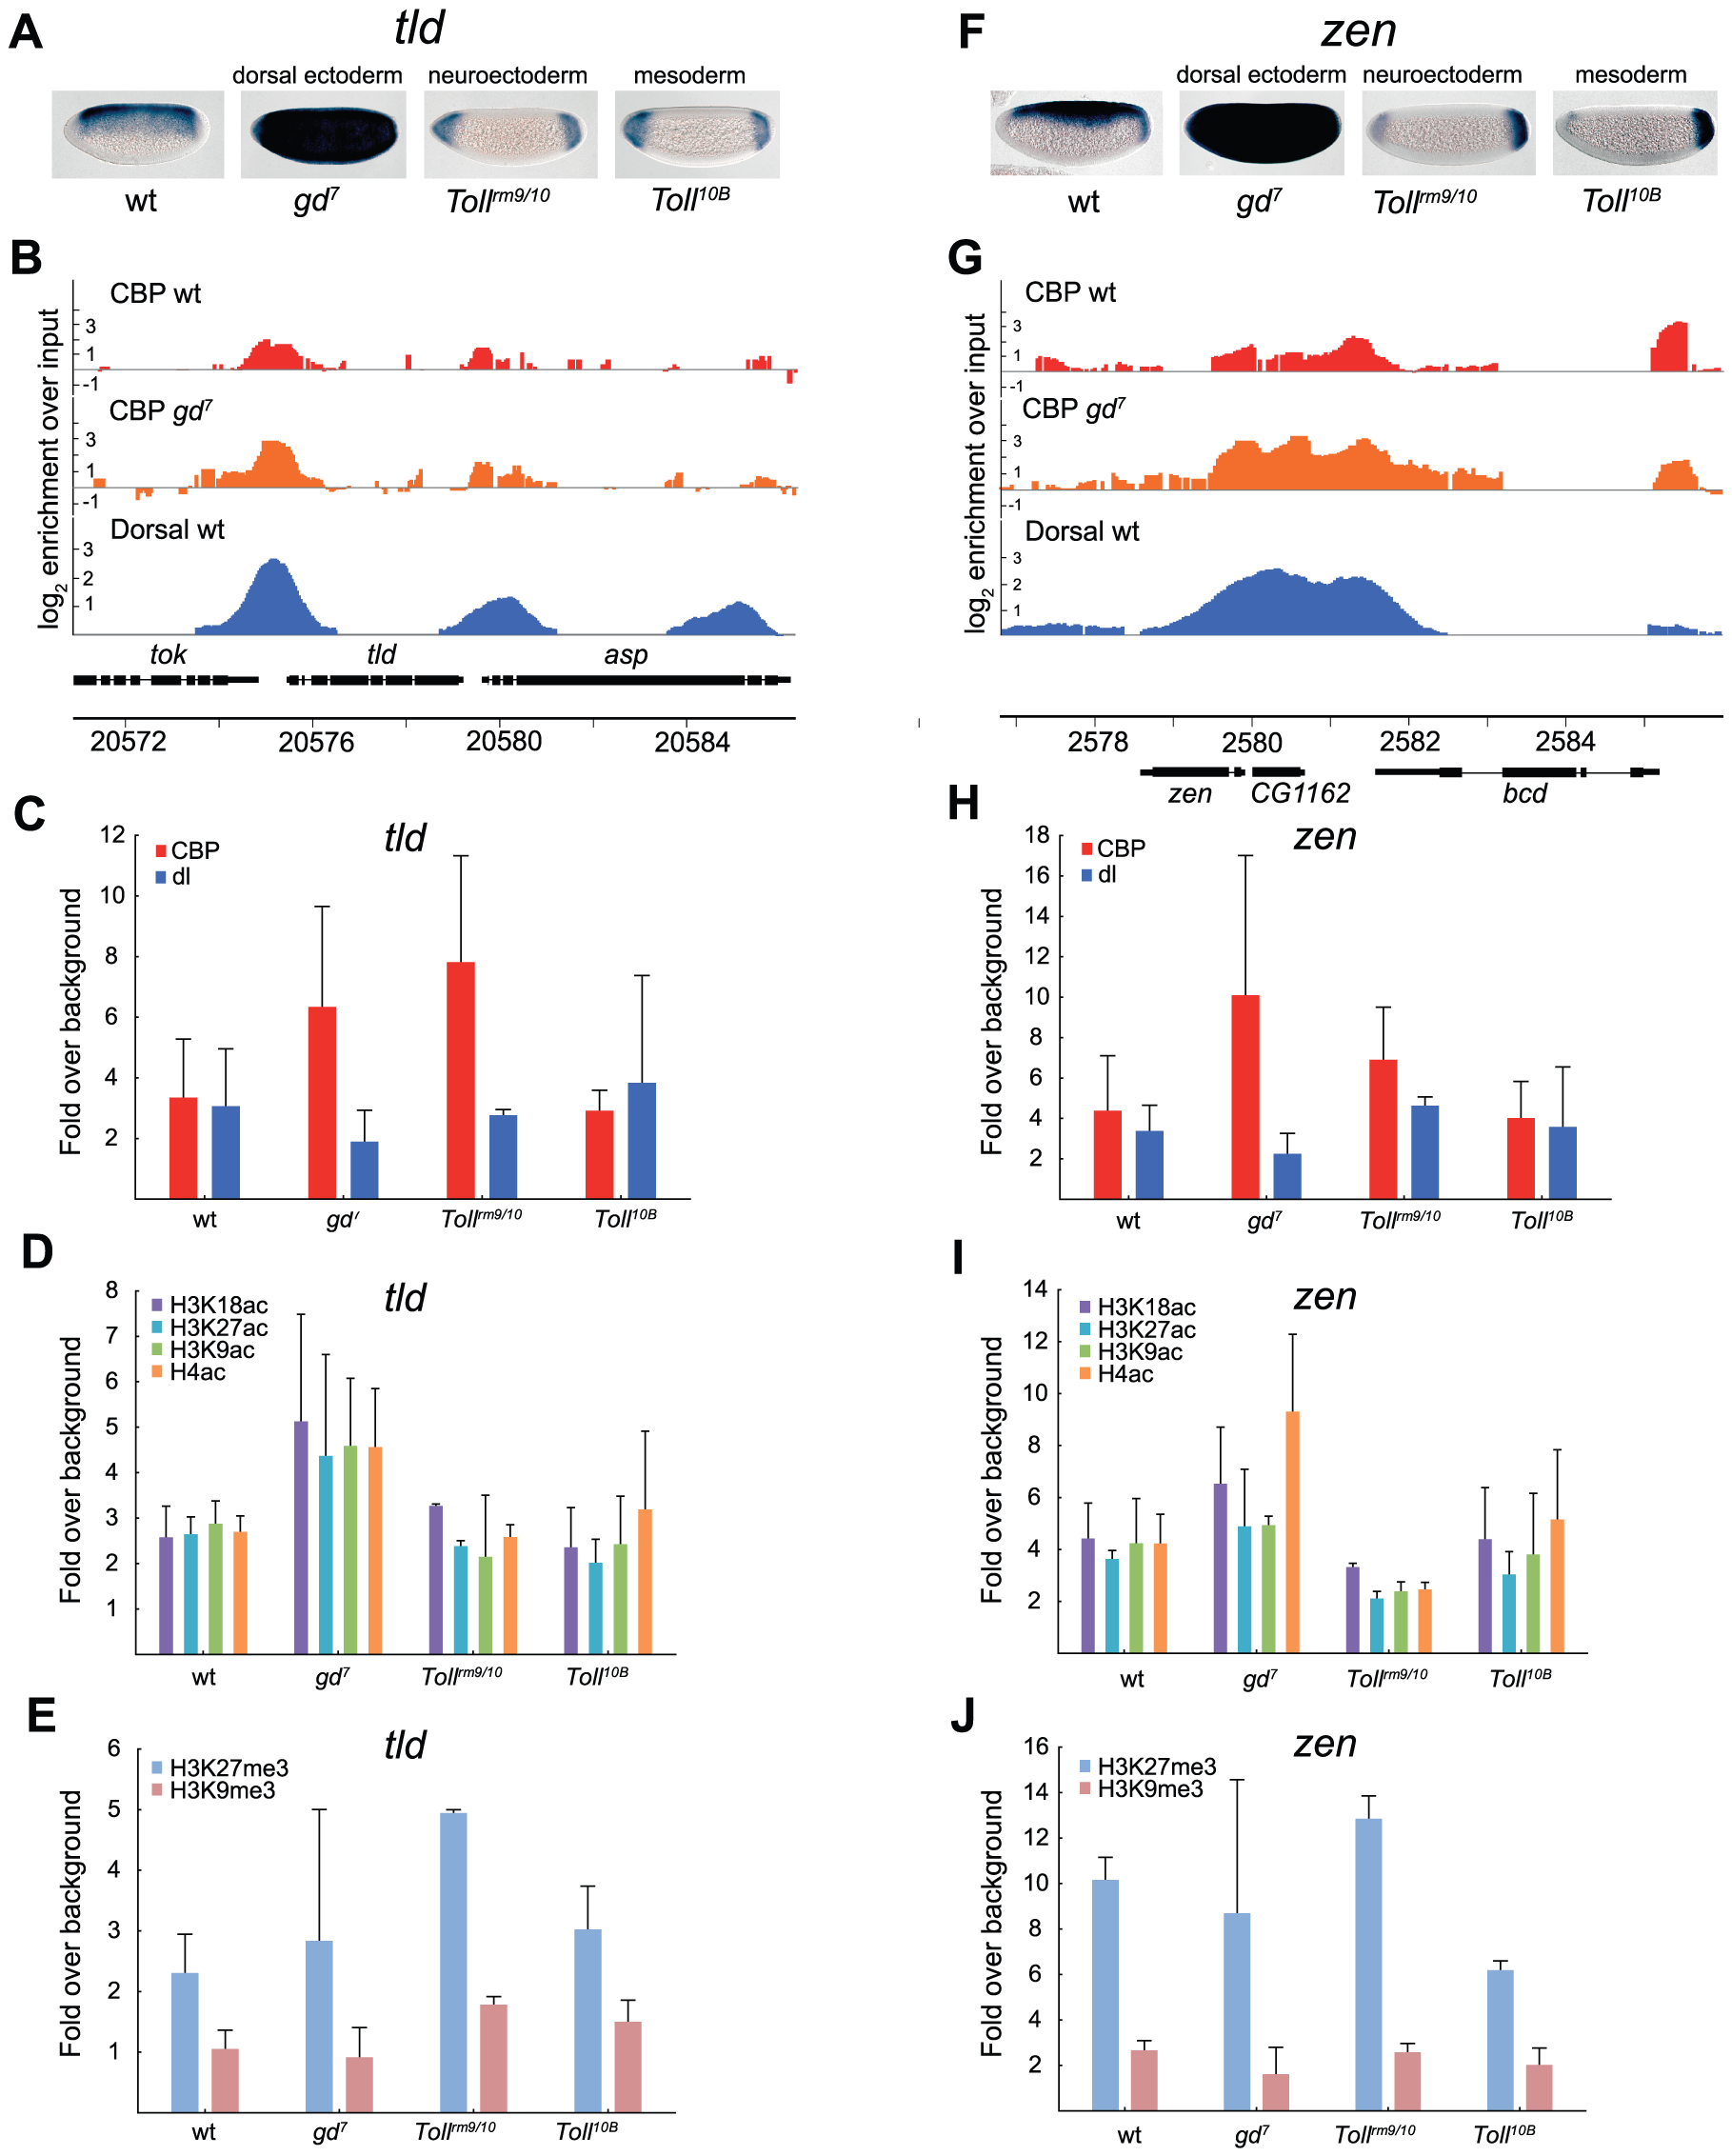 Histone acetylation by CBP at genes repressed by Dorsal is restricted by H3K27me3 in the neuroectoderm.